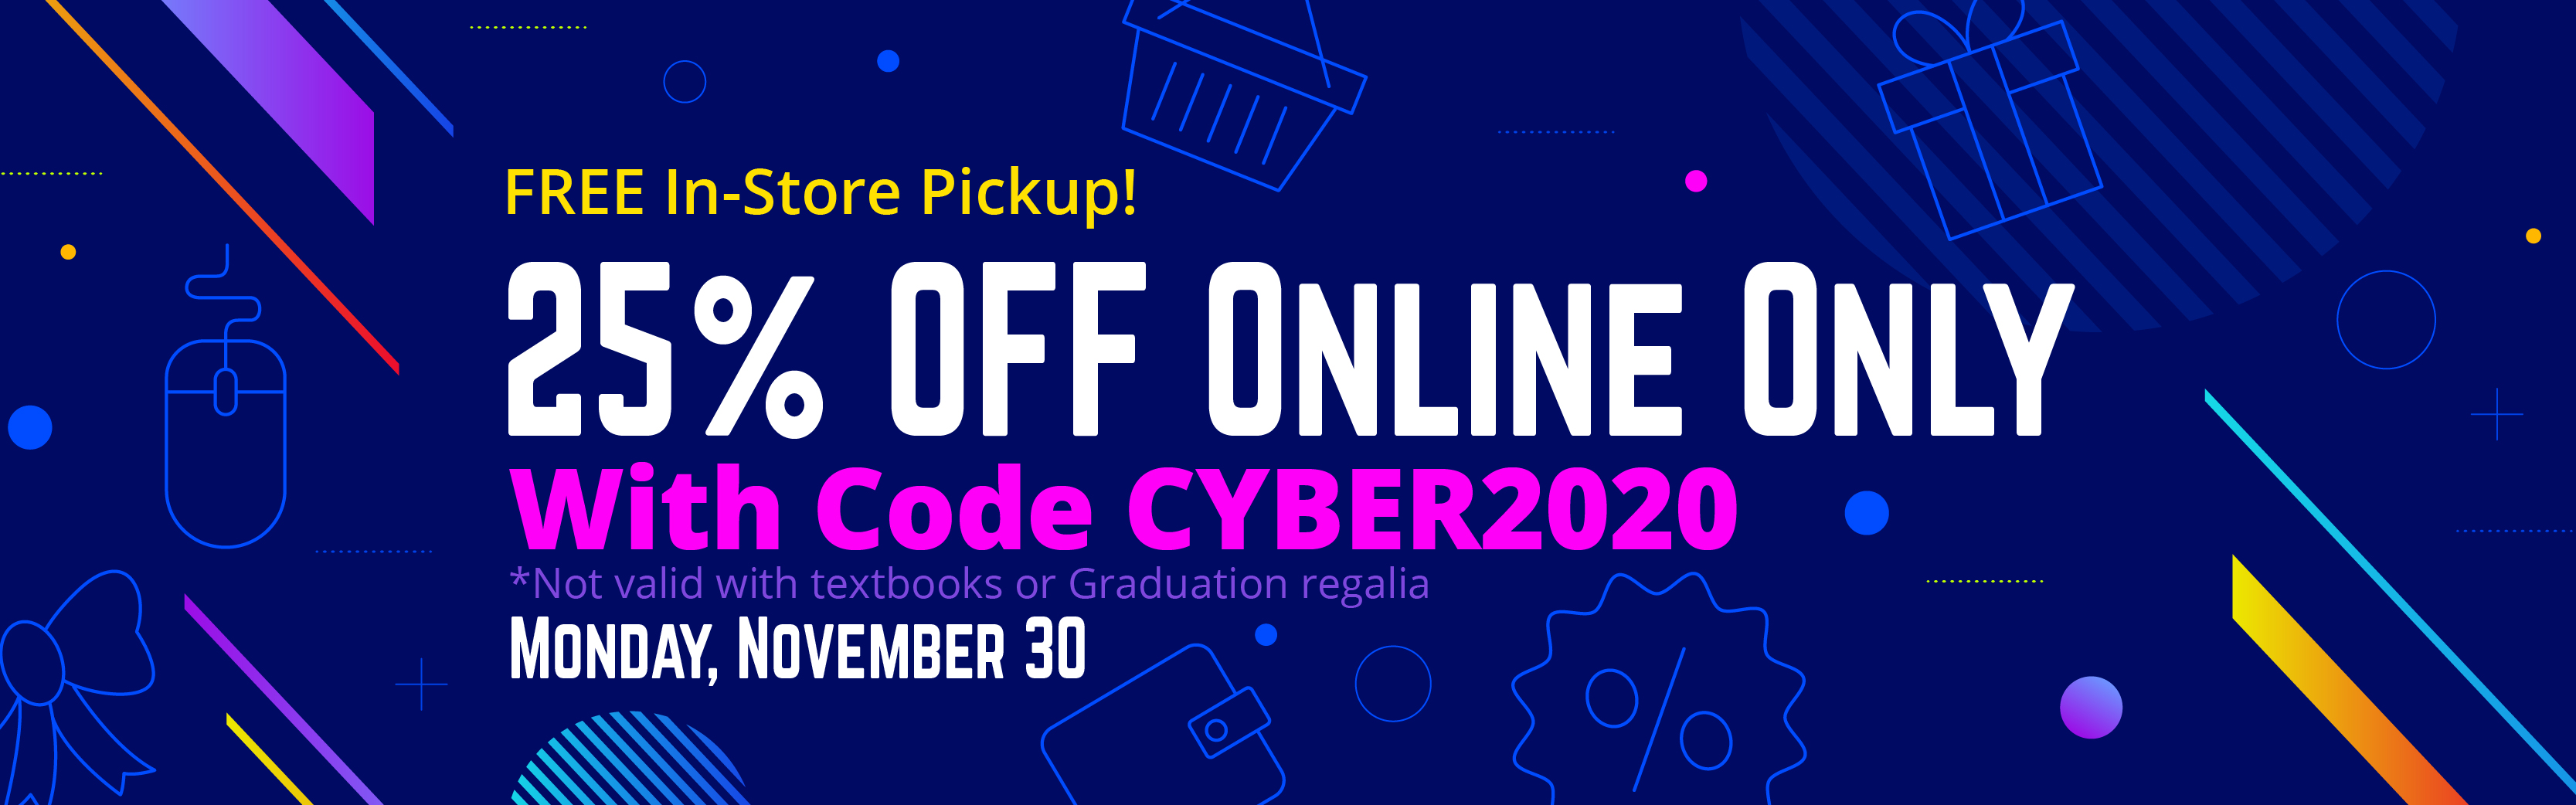 25% off online only with code CYBER2020 on Monday, November 30th. This is not valid with textbooks or graduation regalia.